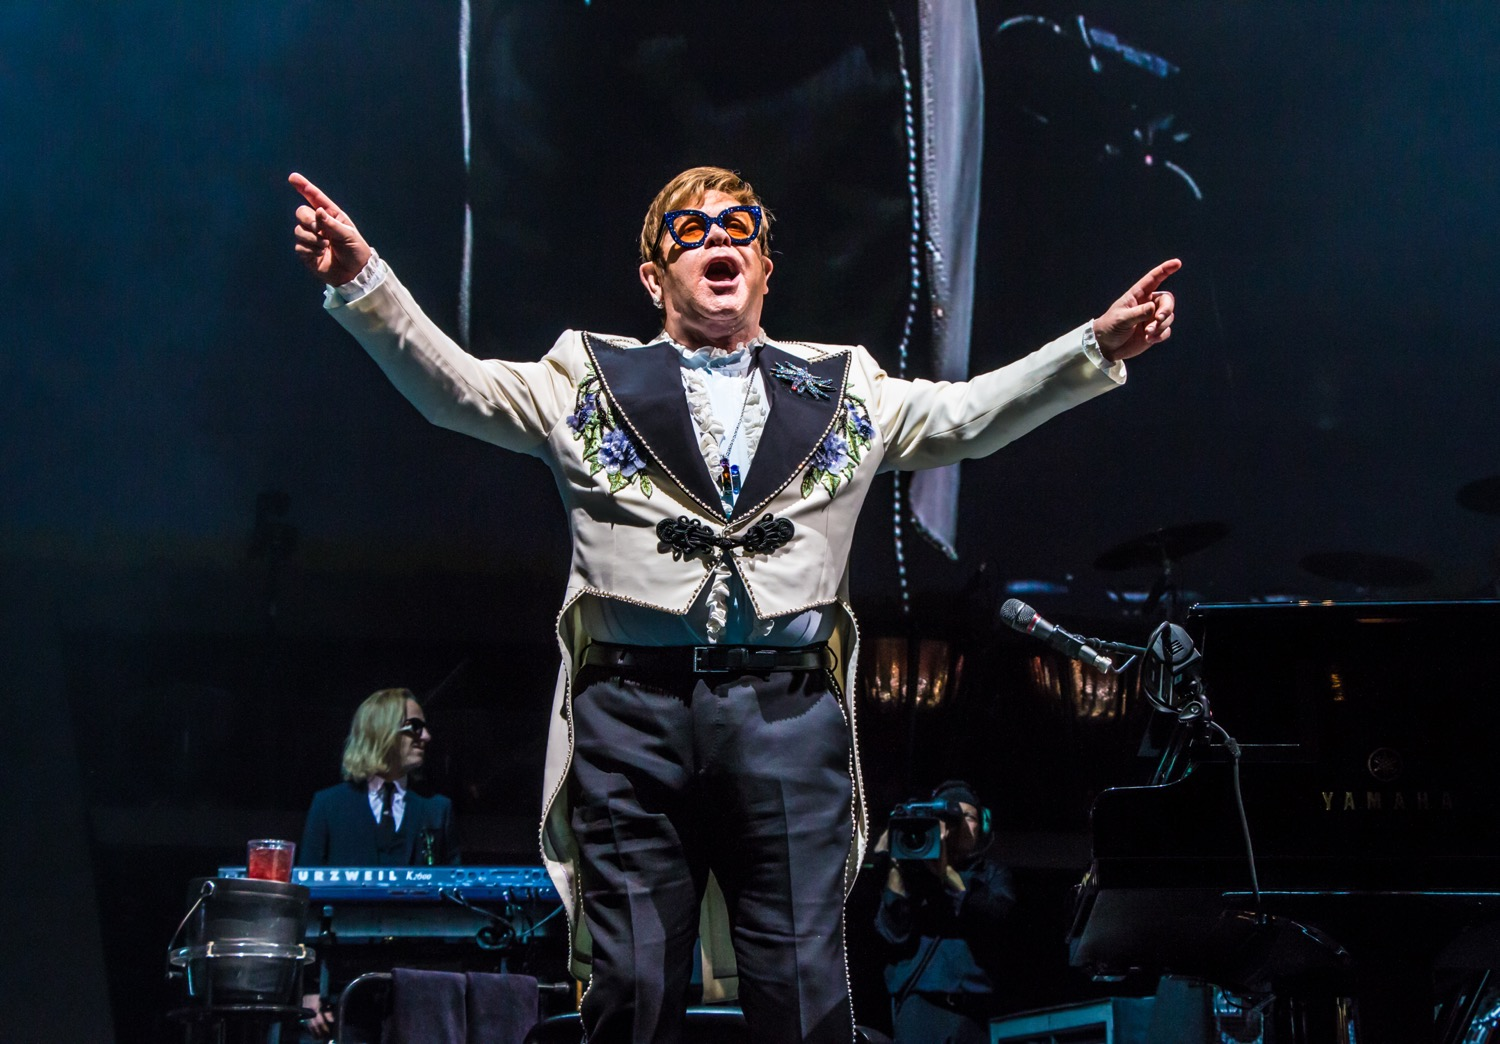 elton john 88 lior phillips Top Live Acts of 2018